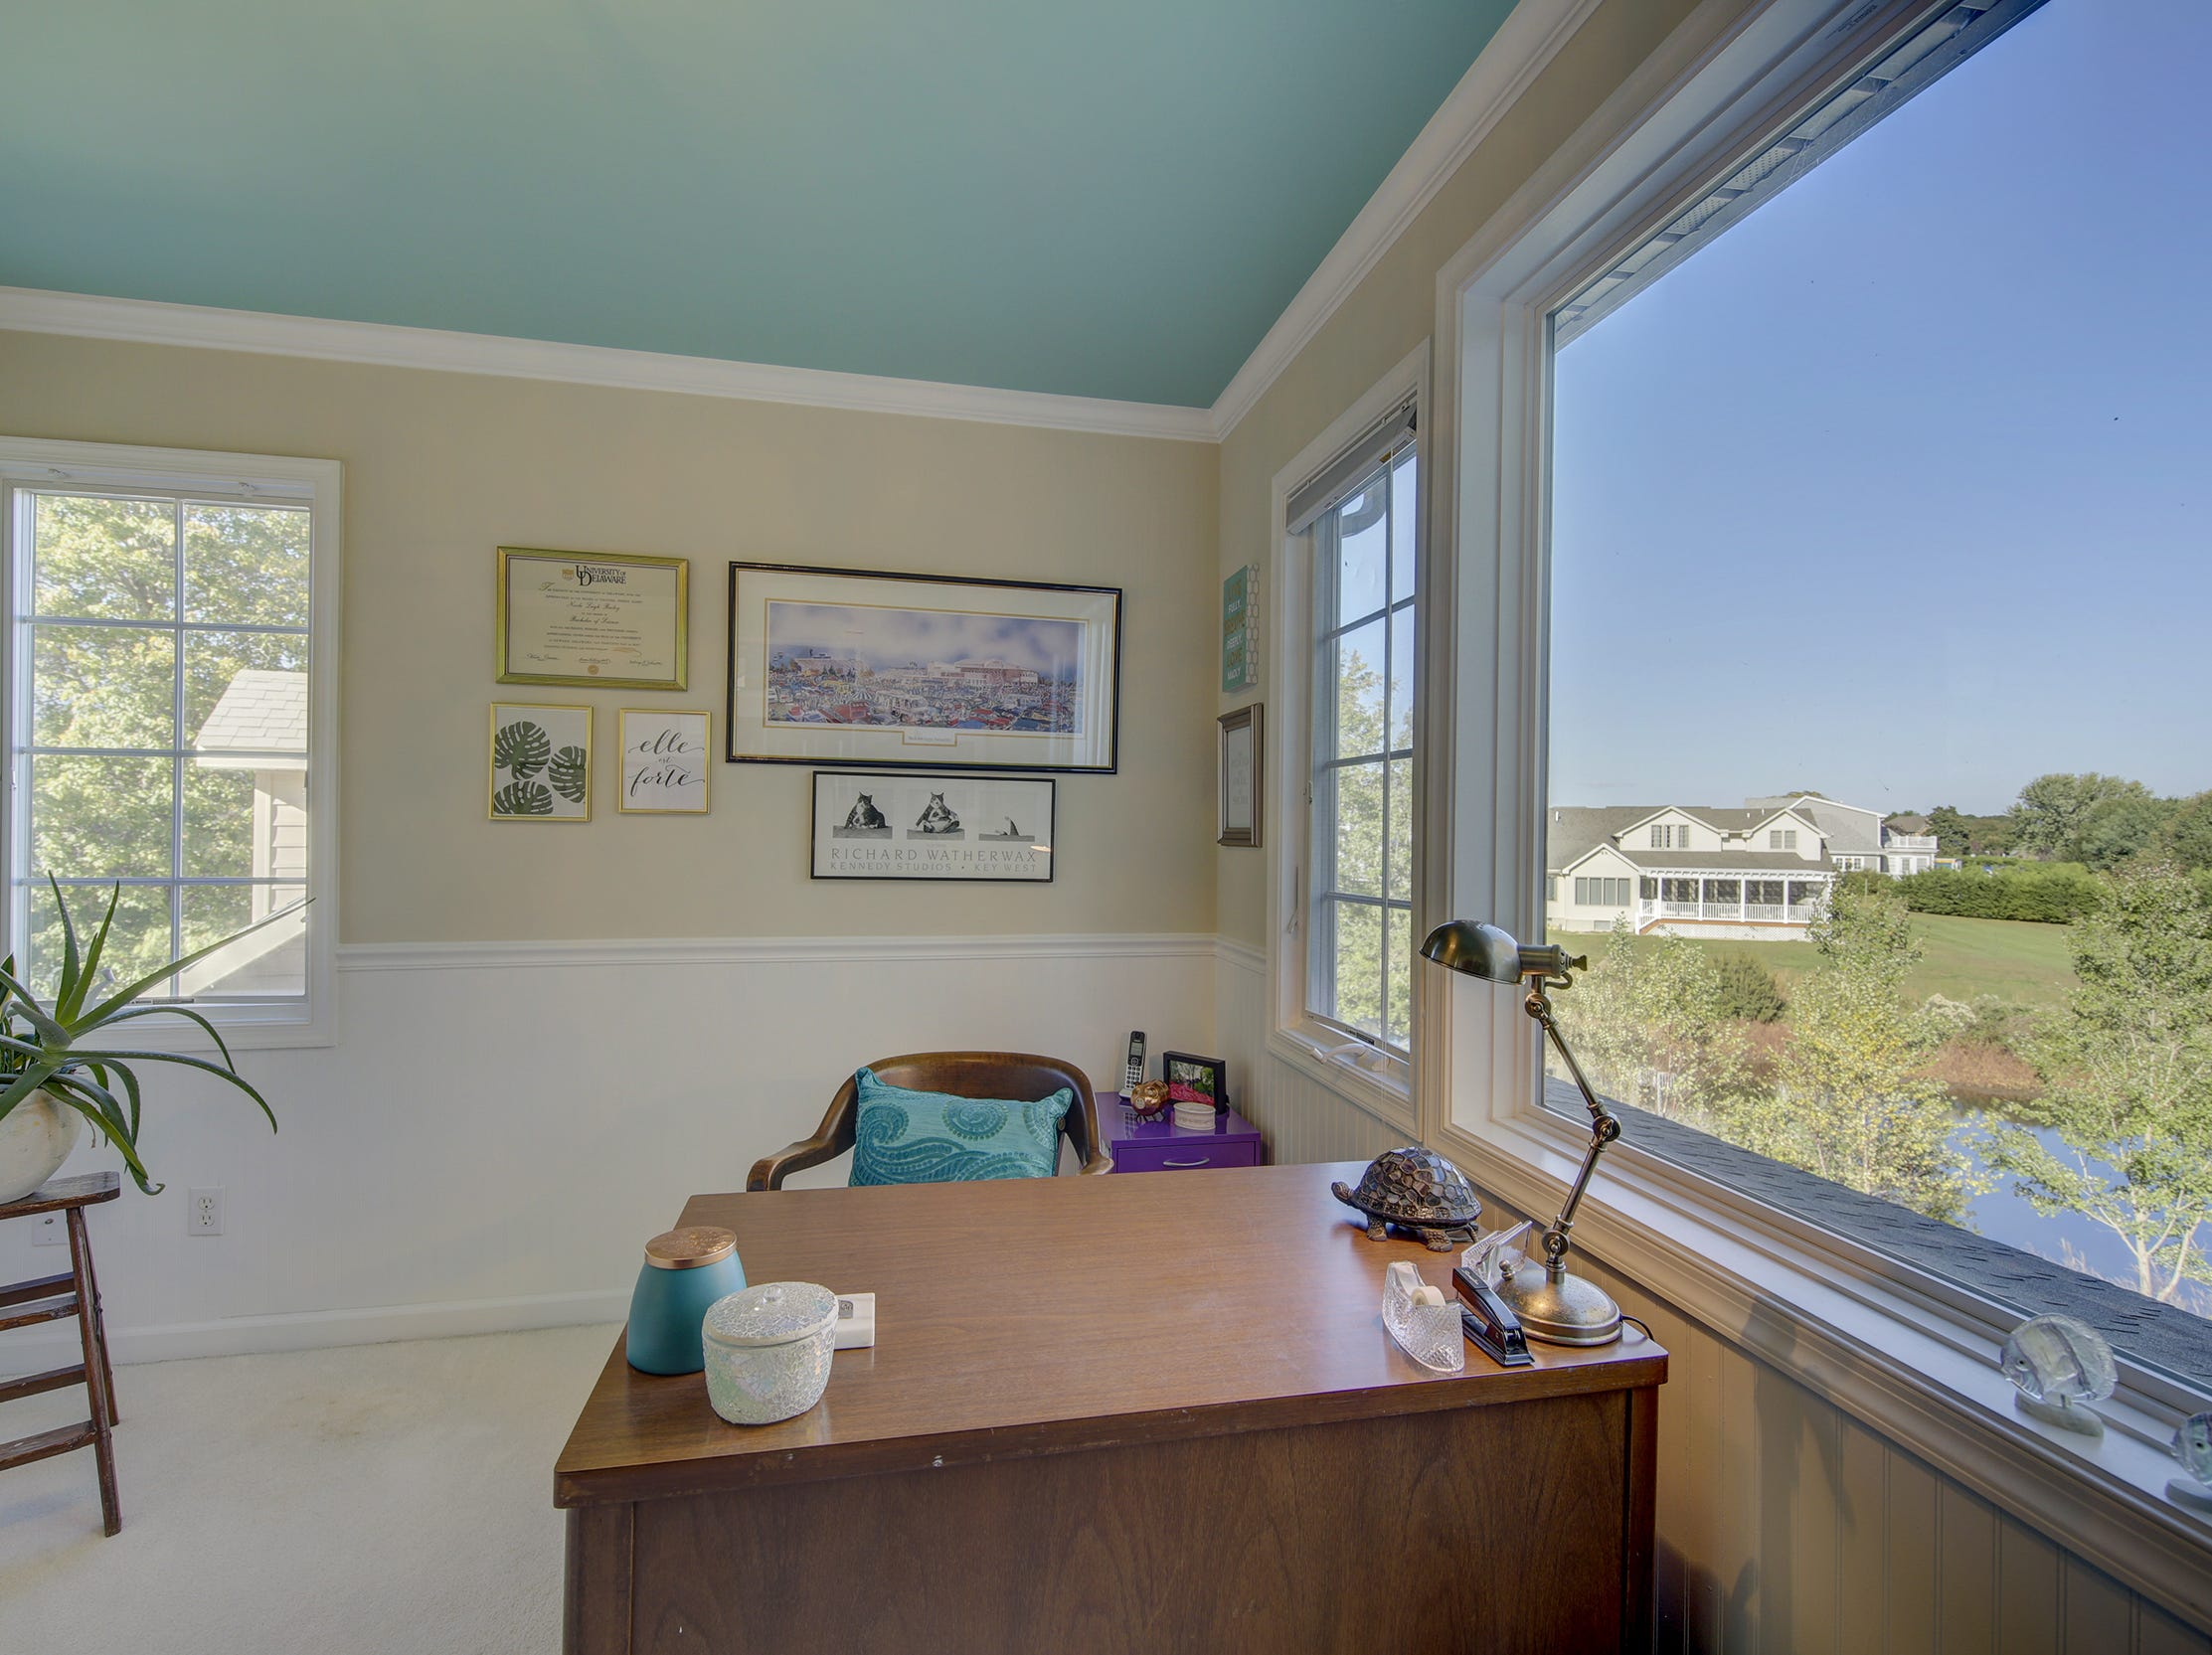 The office at 204 Lakeview Shores in Rehoboth Beach has a view of the pond.